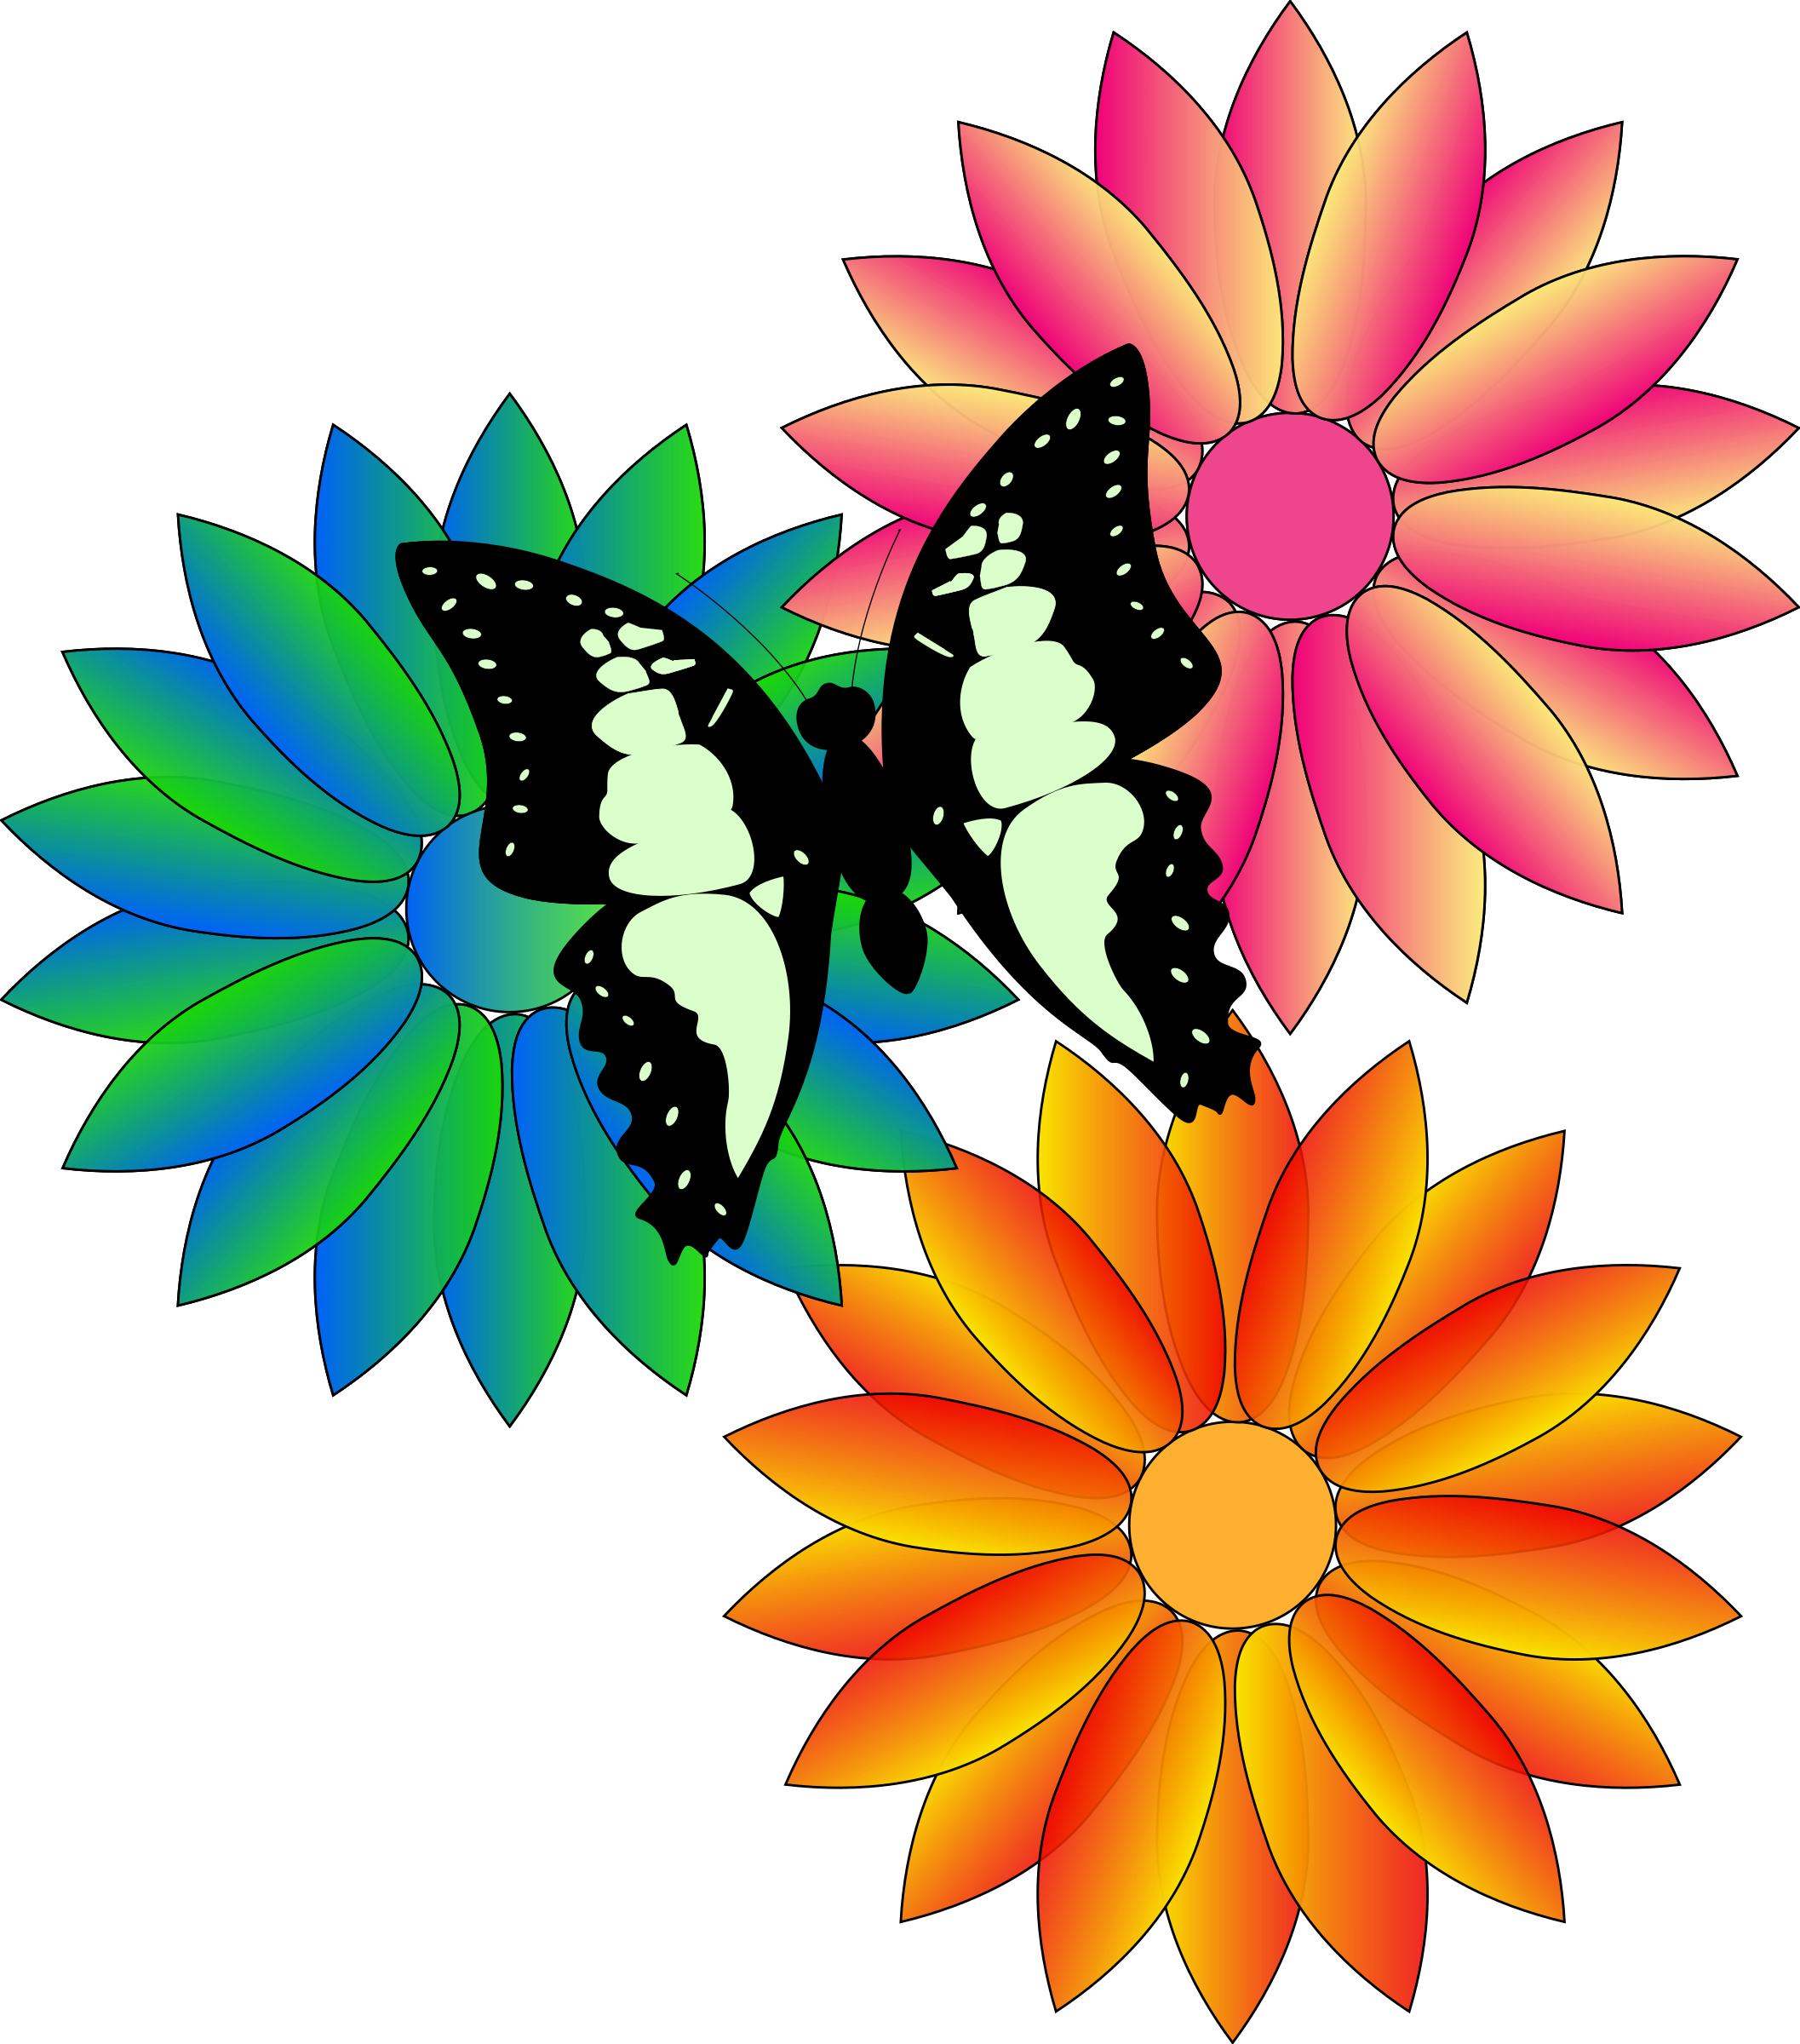 butterfly on flower png